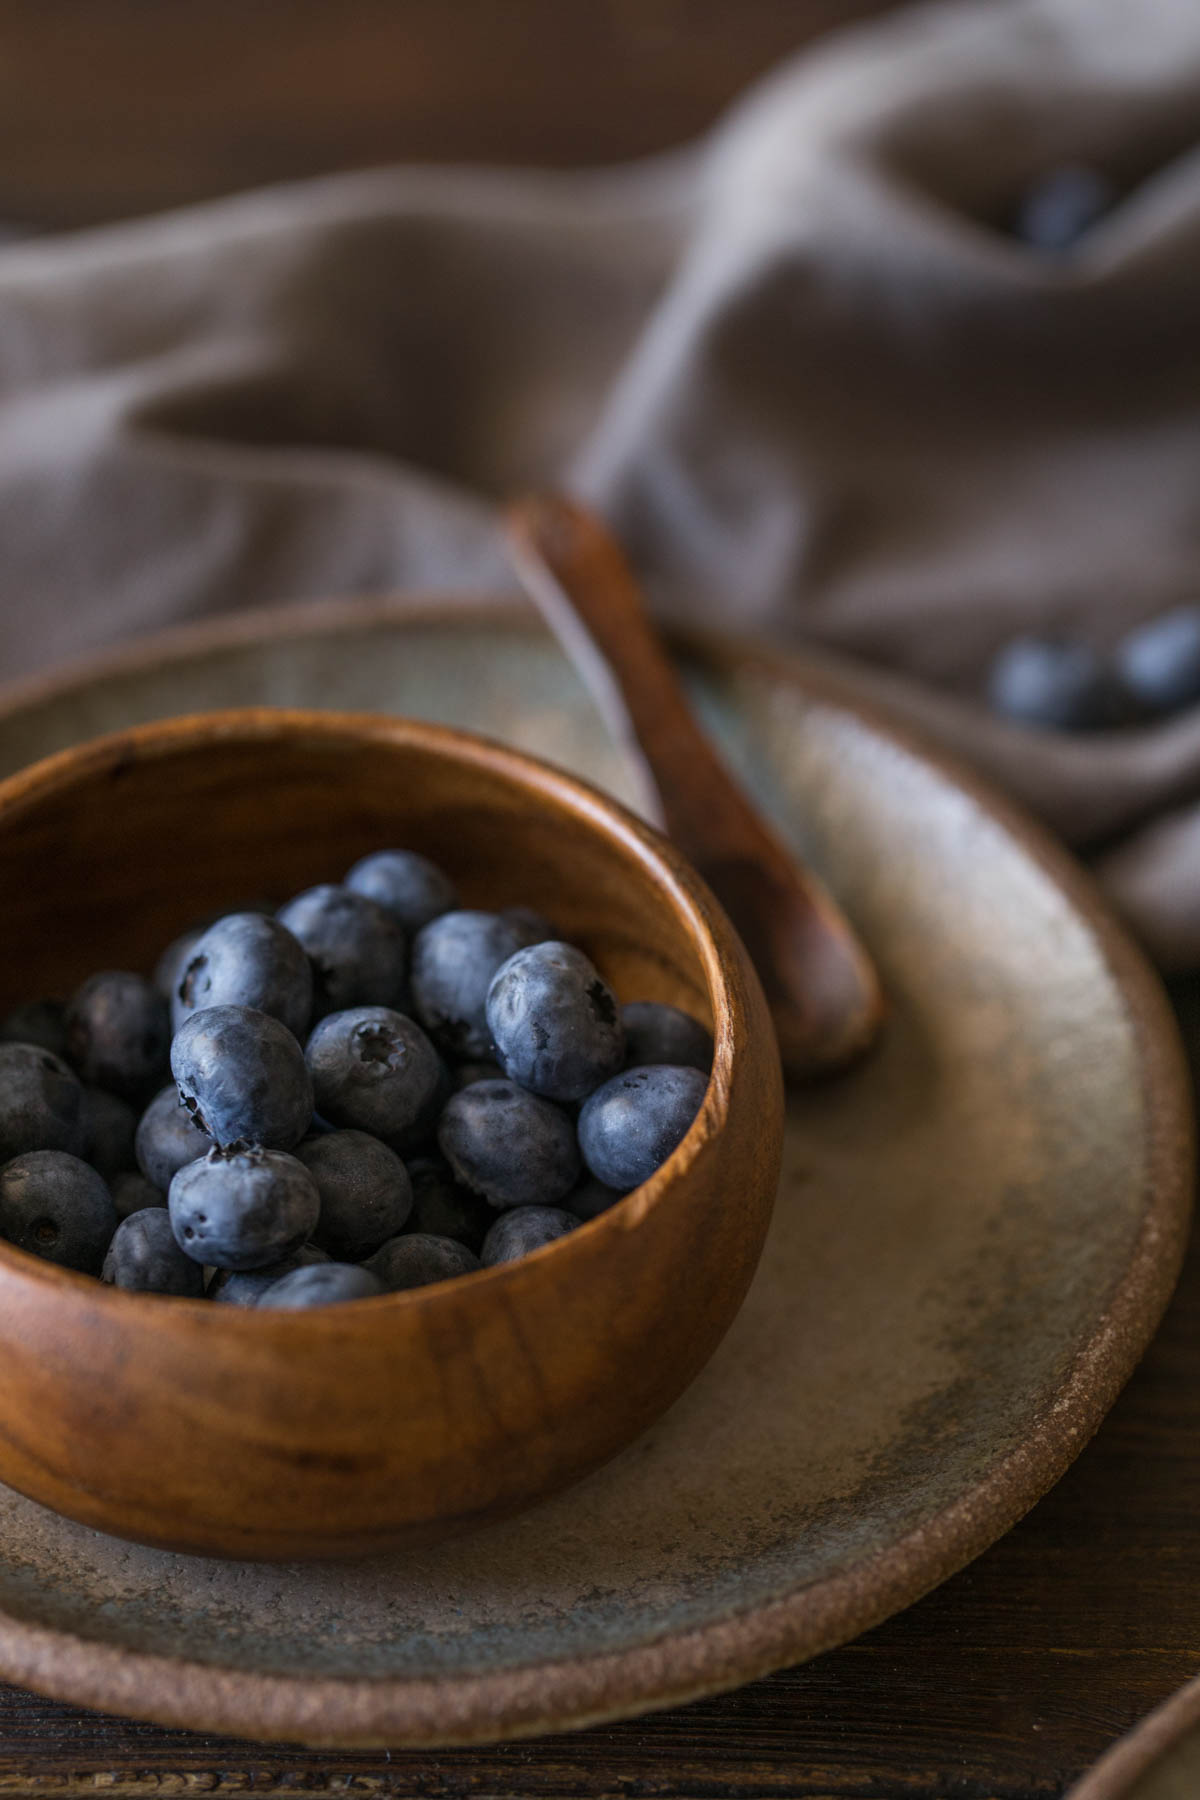 A small wood bowl of blueberries sitting on a plate with a small wooden spoon.